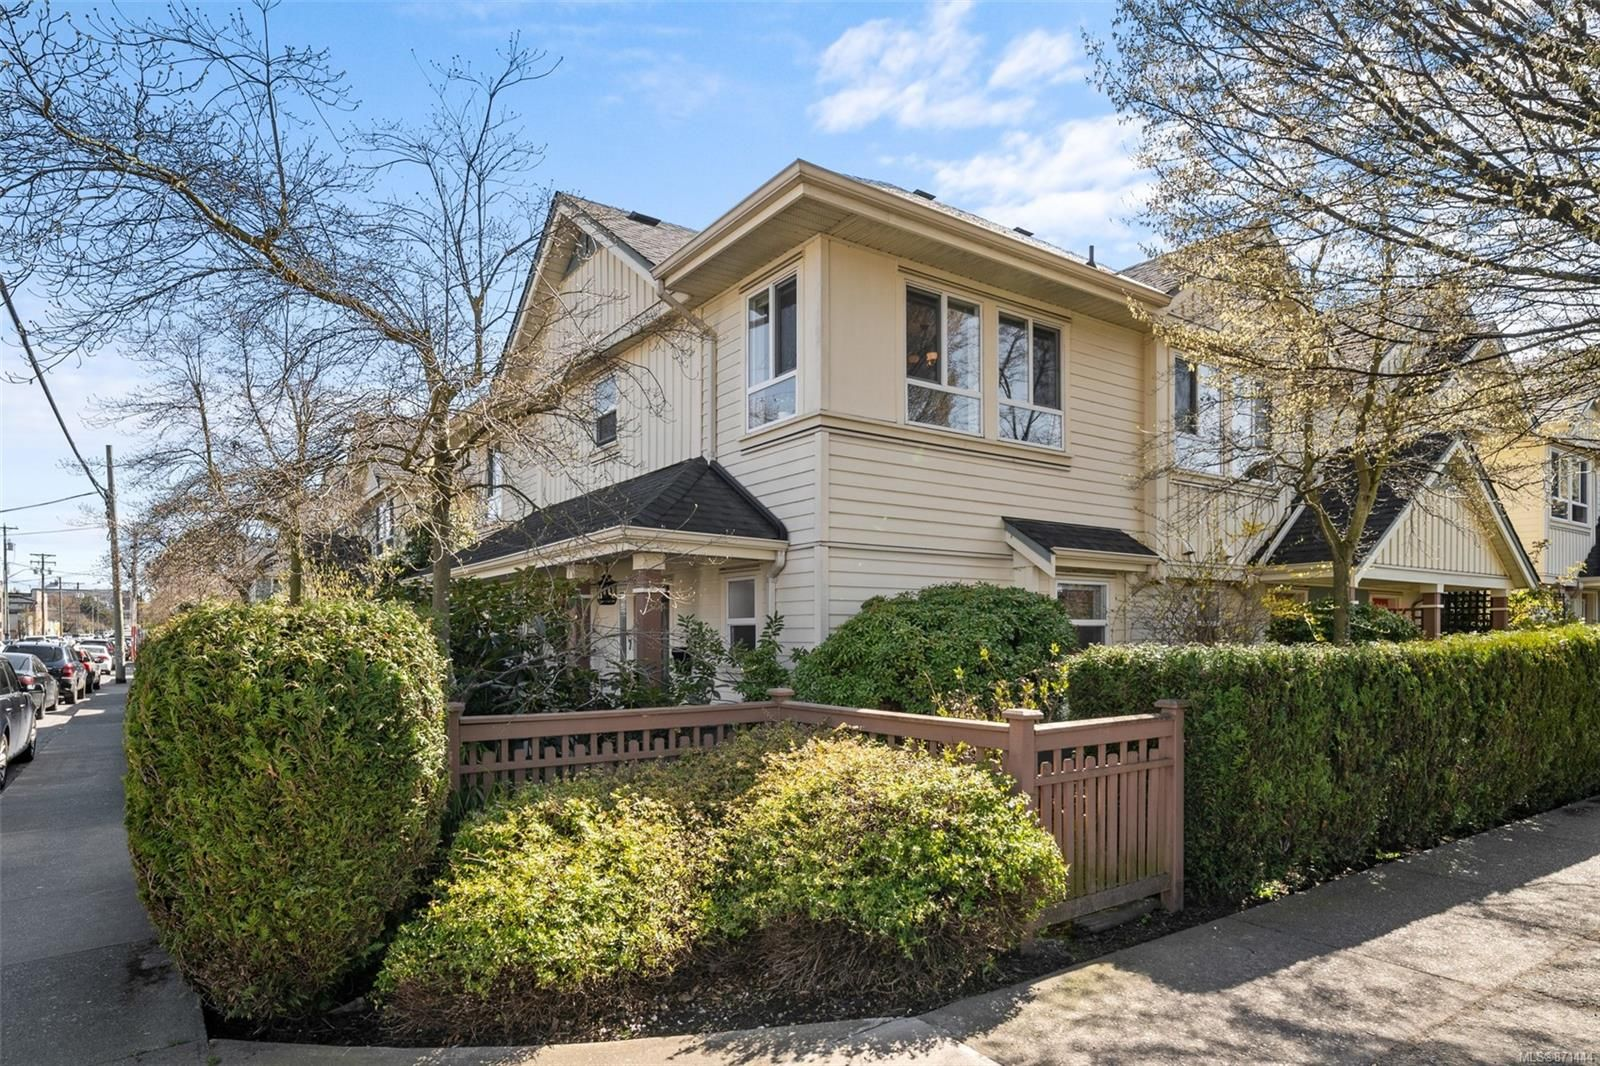 Main Photo: 7 1019 North Park St in : Vi Central Park Row/Townhouse for sale (Victoria)  : MLS®# 871444